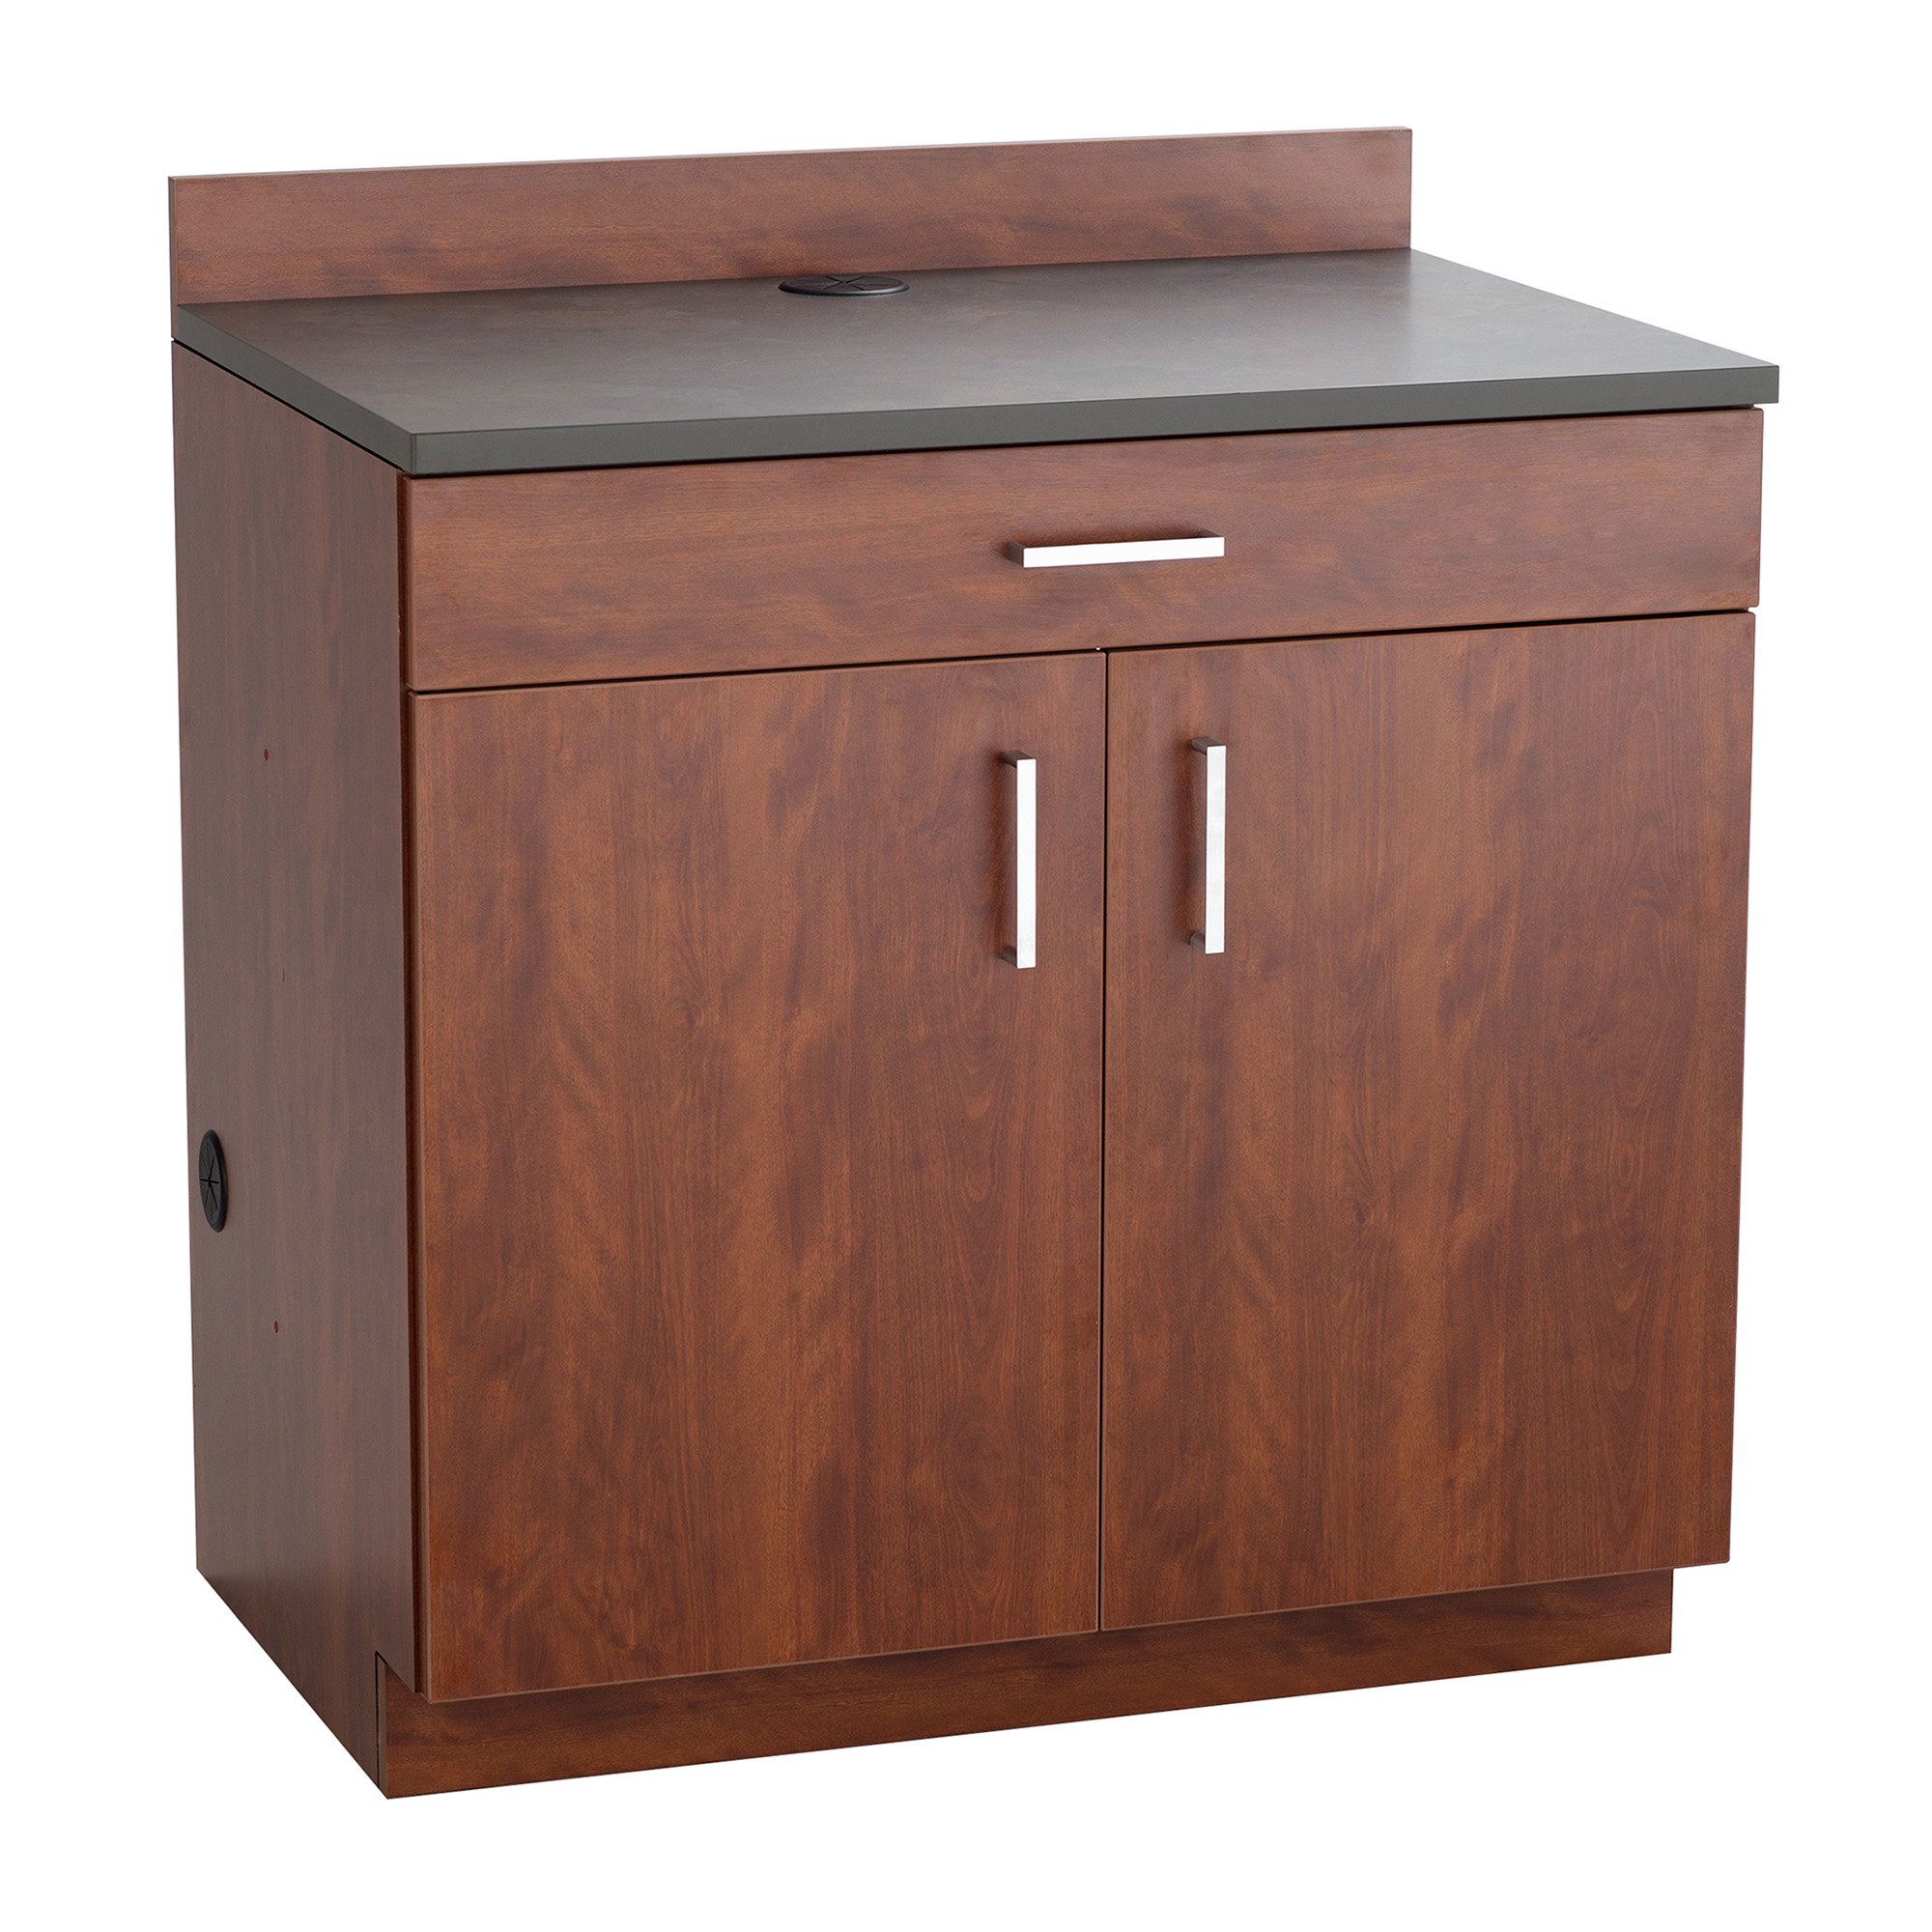 2 Door/1 Drawer Base Cabinet-Finish:Mahogany